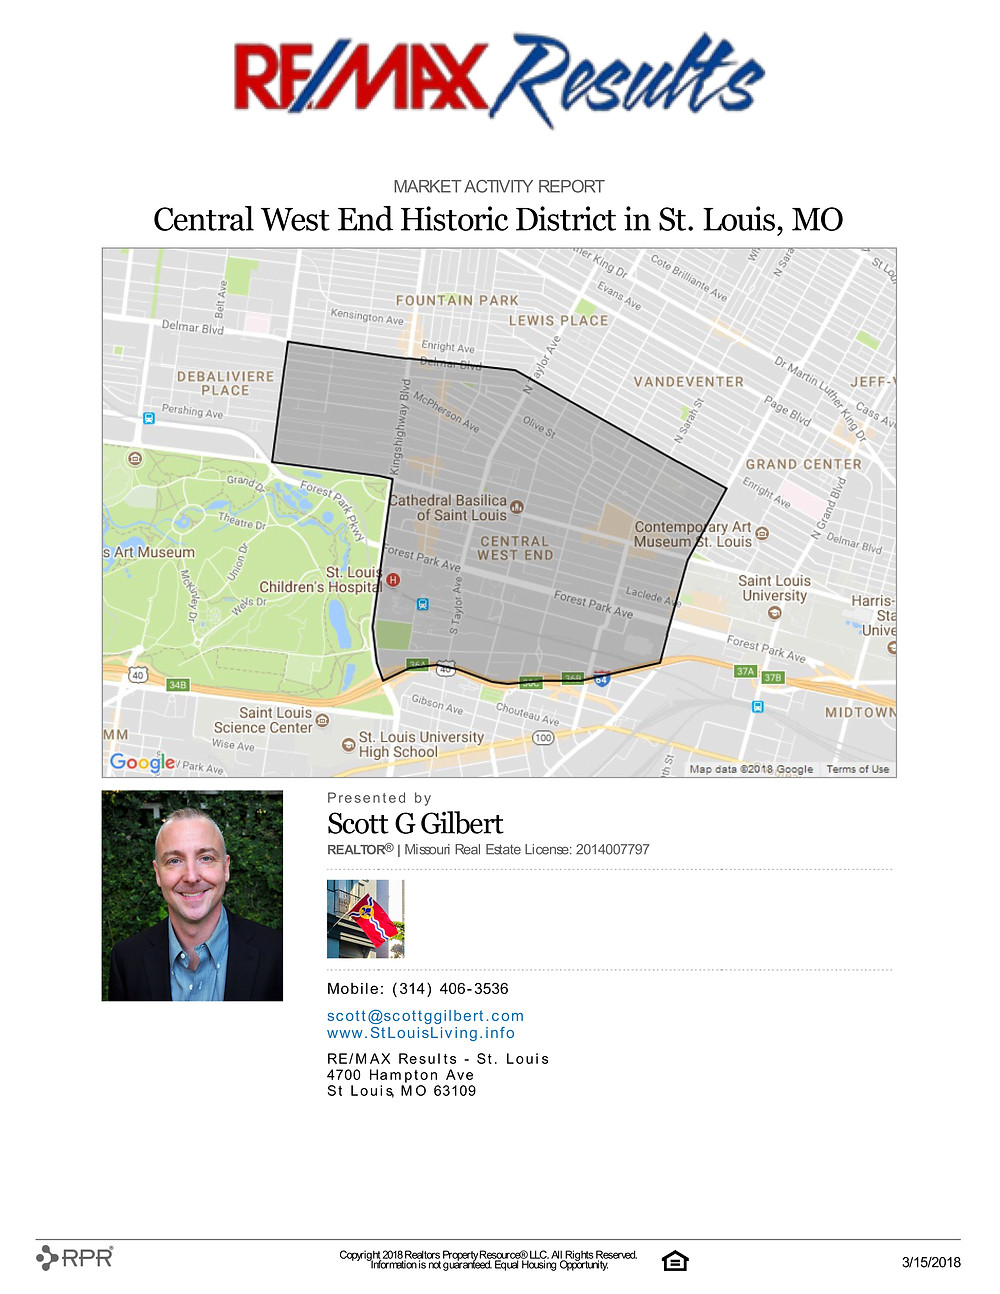 Central West End Market Activity Report | www.CentralWestEndLiving.com